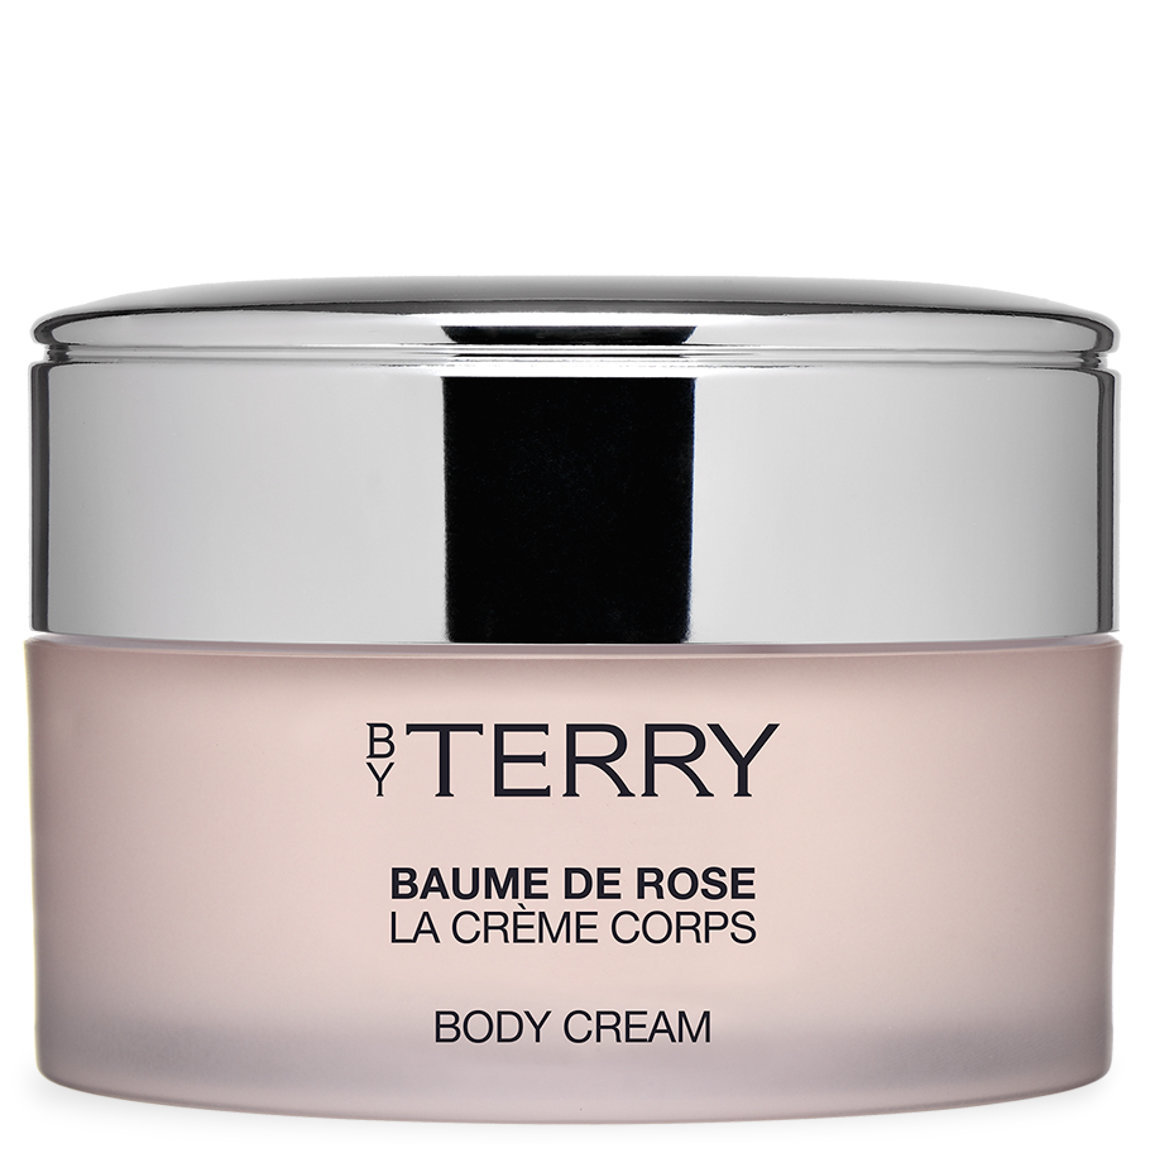 BY TERRY Baume de Rose Body Cream alternative view 1 - product swatch.